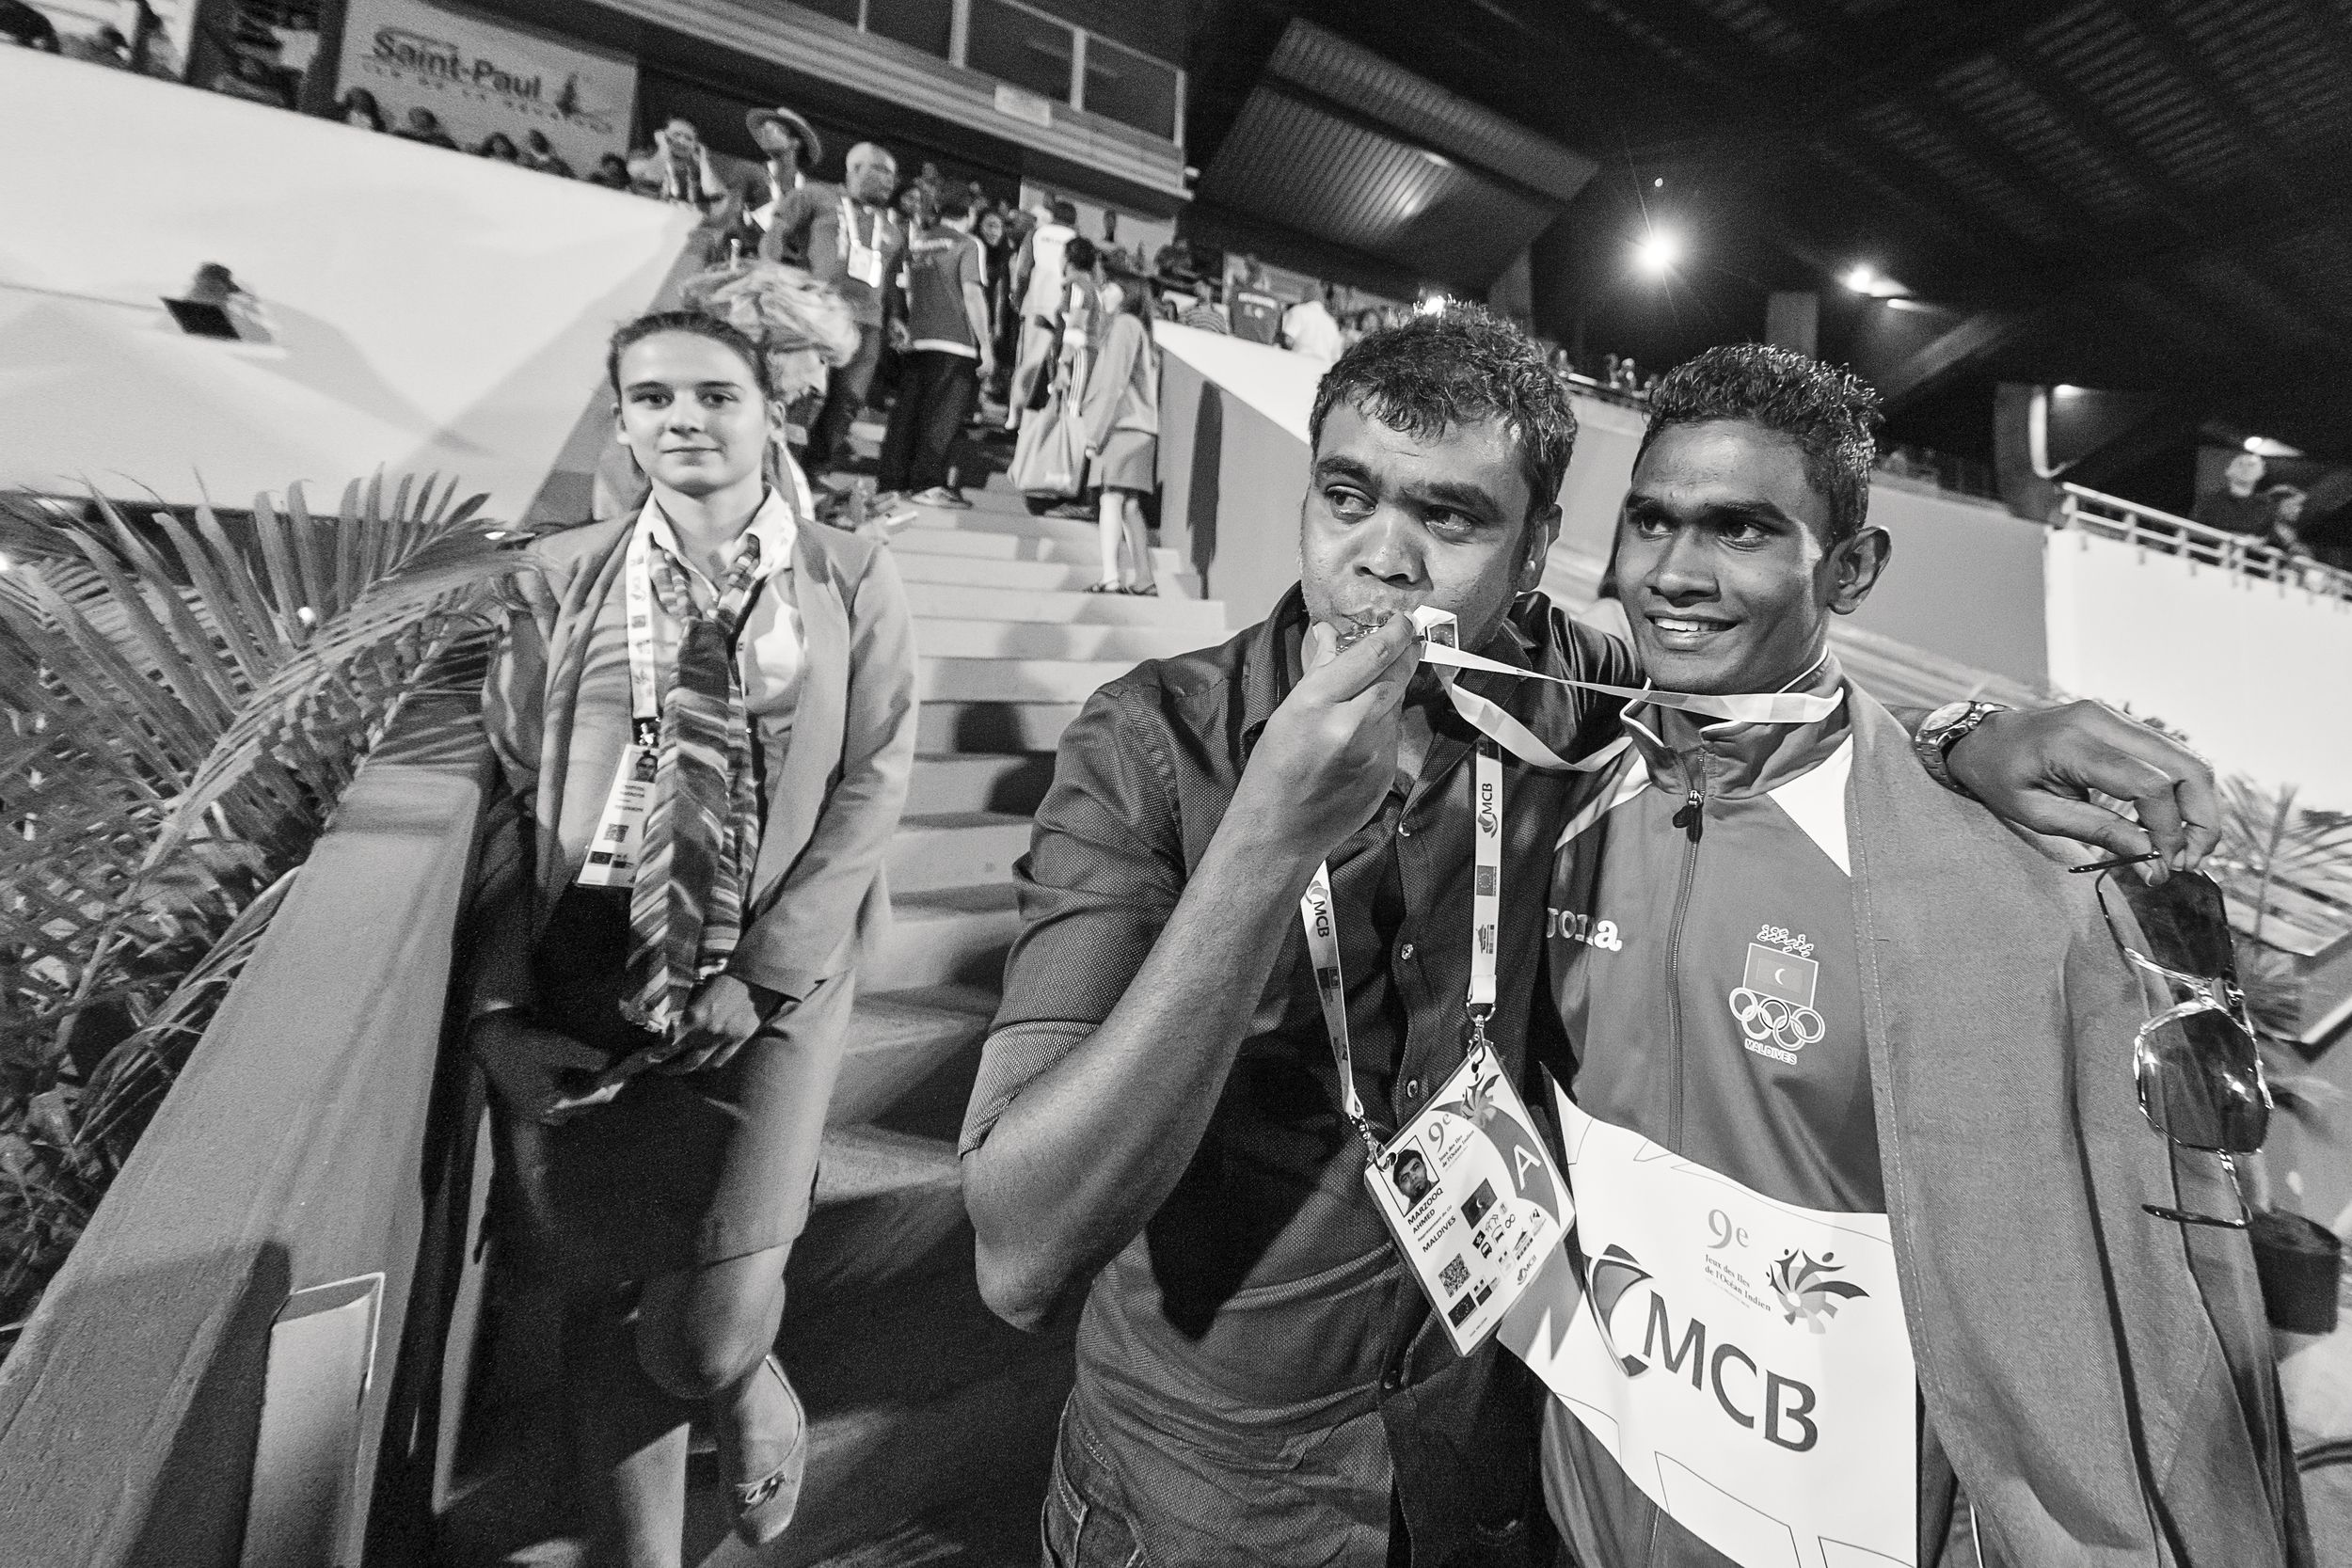 MOC General Secretary kissing the Gold Medal - His long invested dream come true